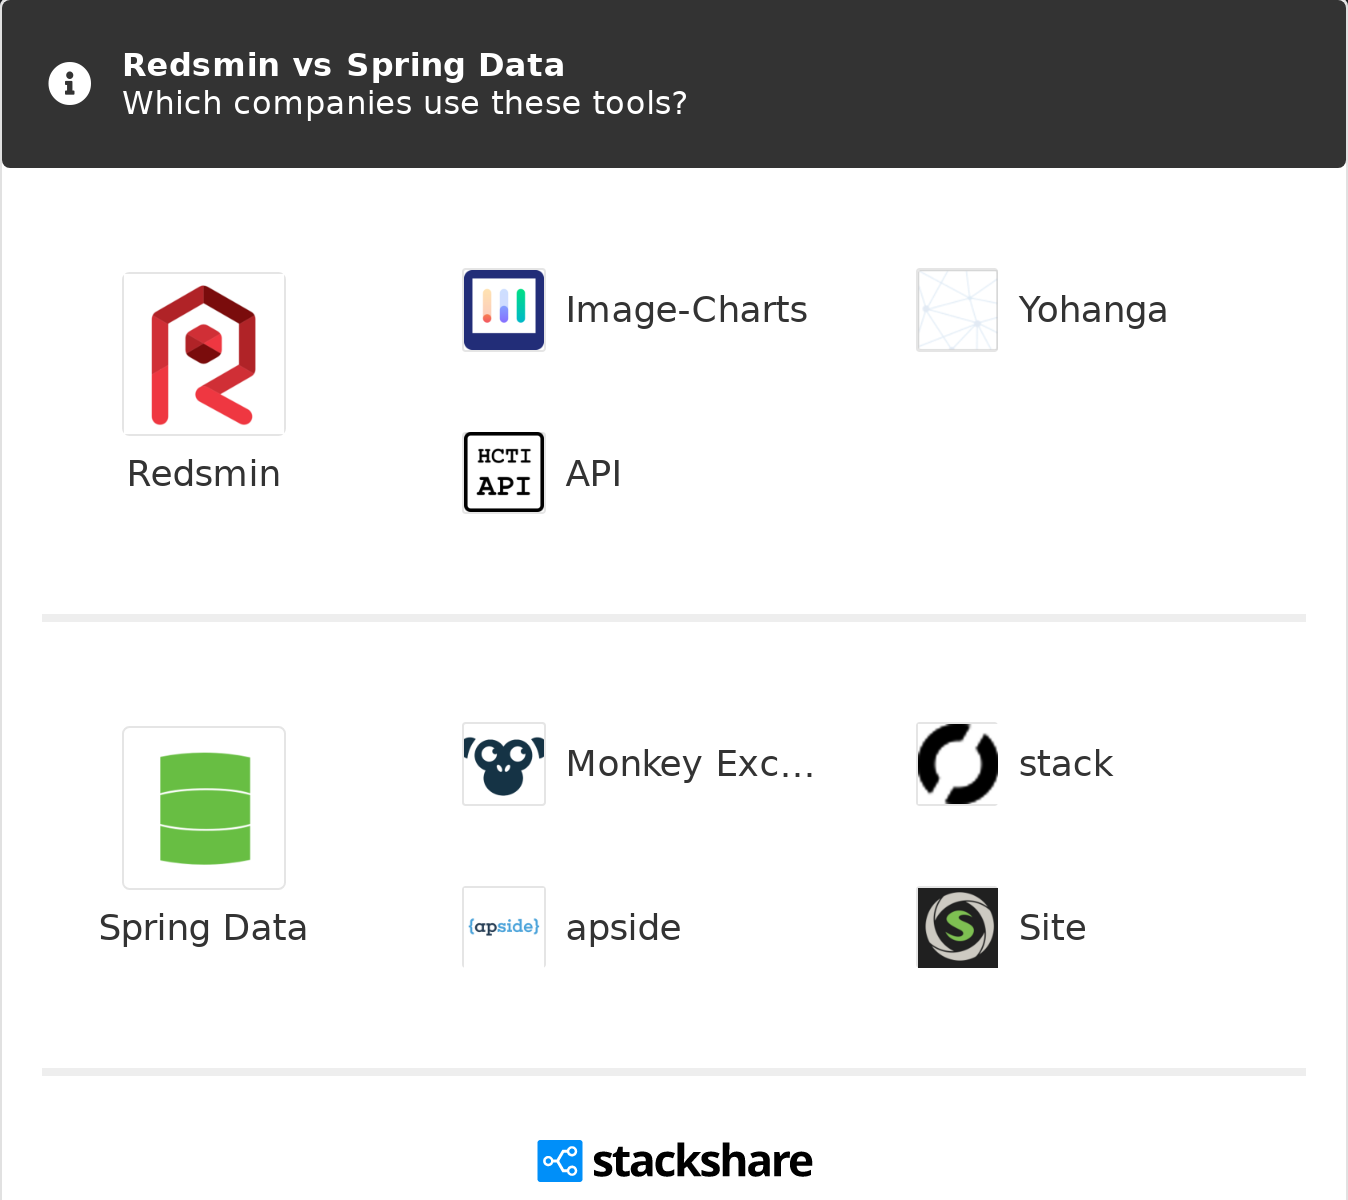 Redsmin vs Spring Data   What are the differences